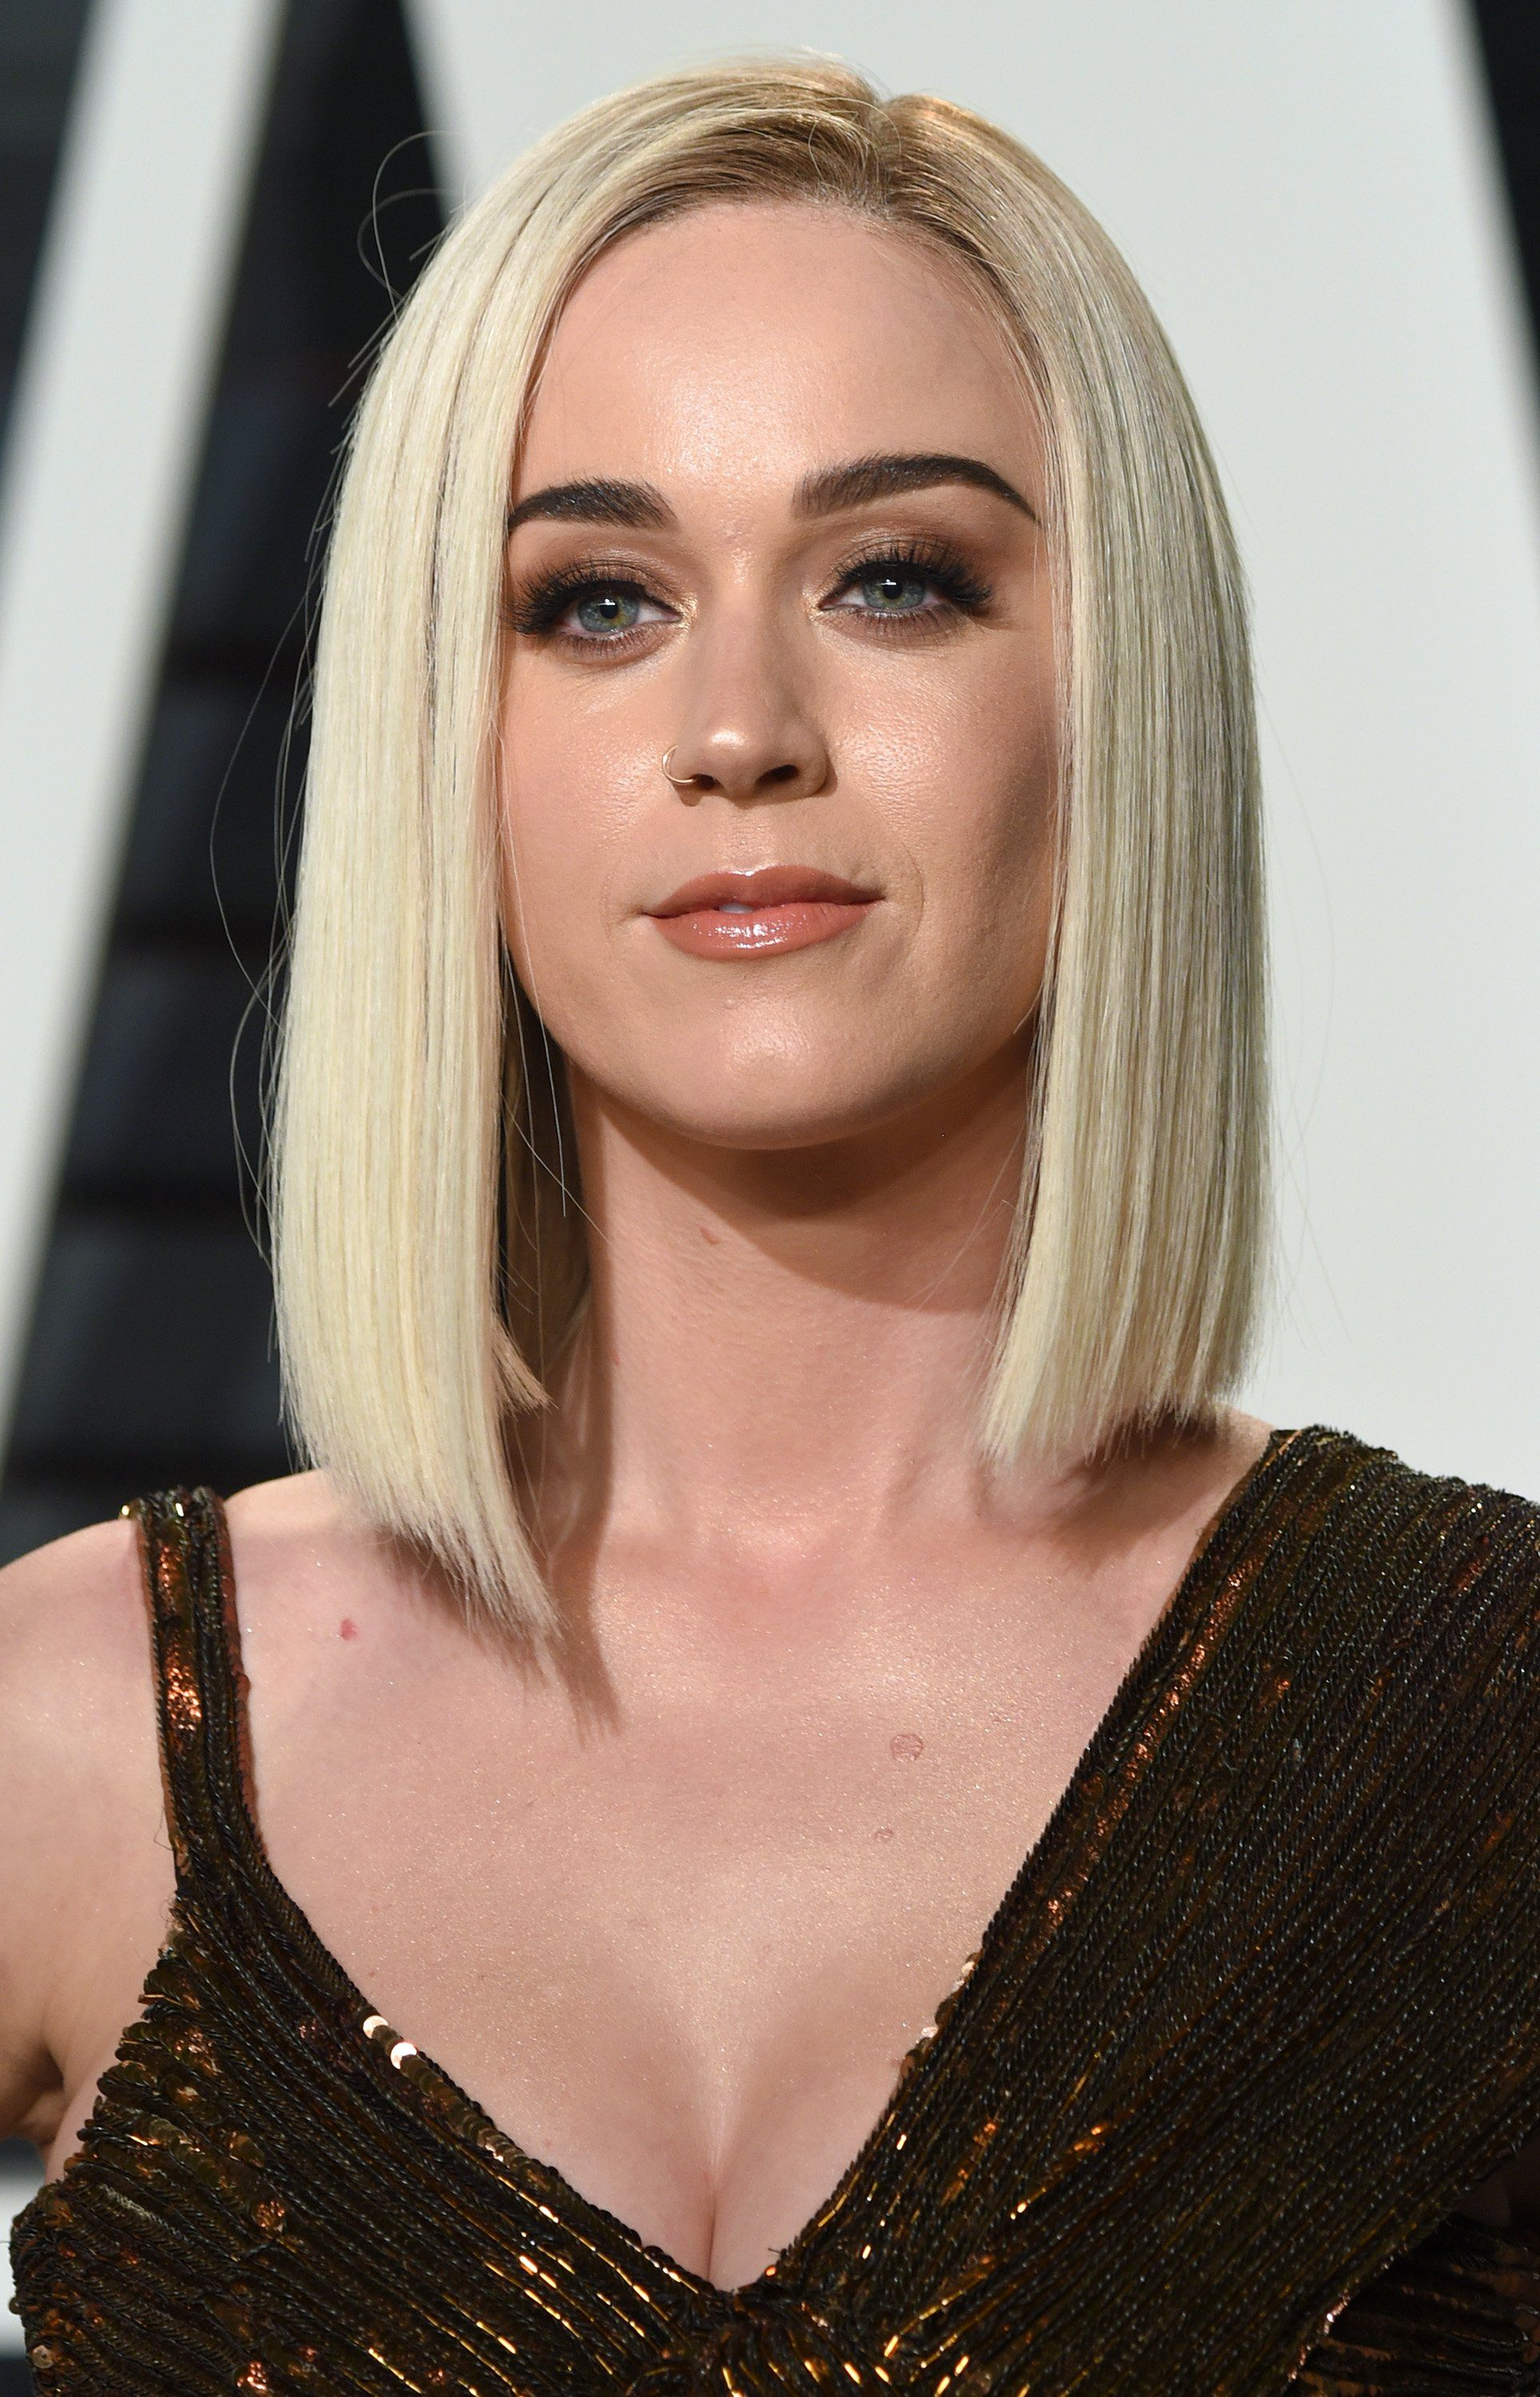 Katy Perry Katy perry pictures, Katy perry, Beauty